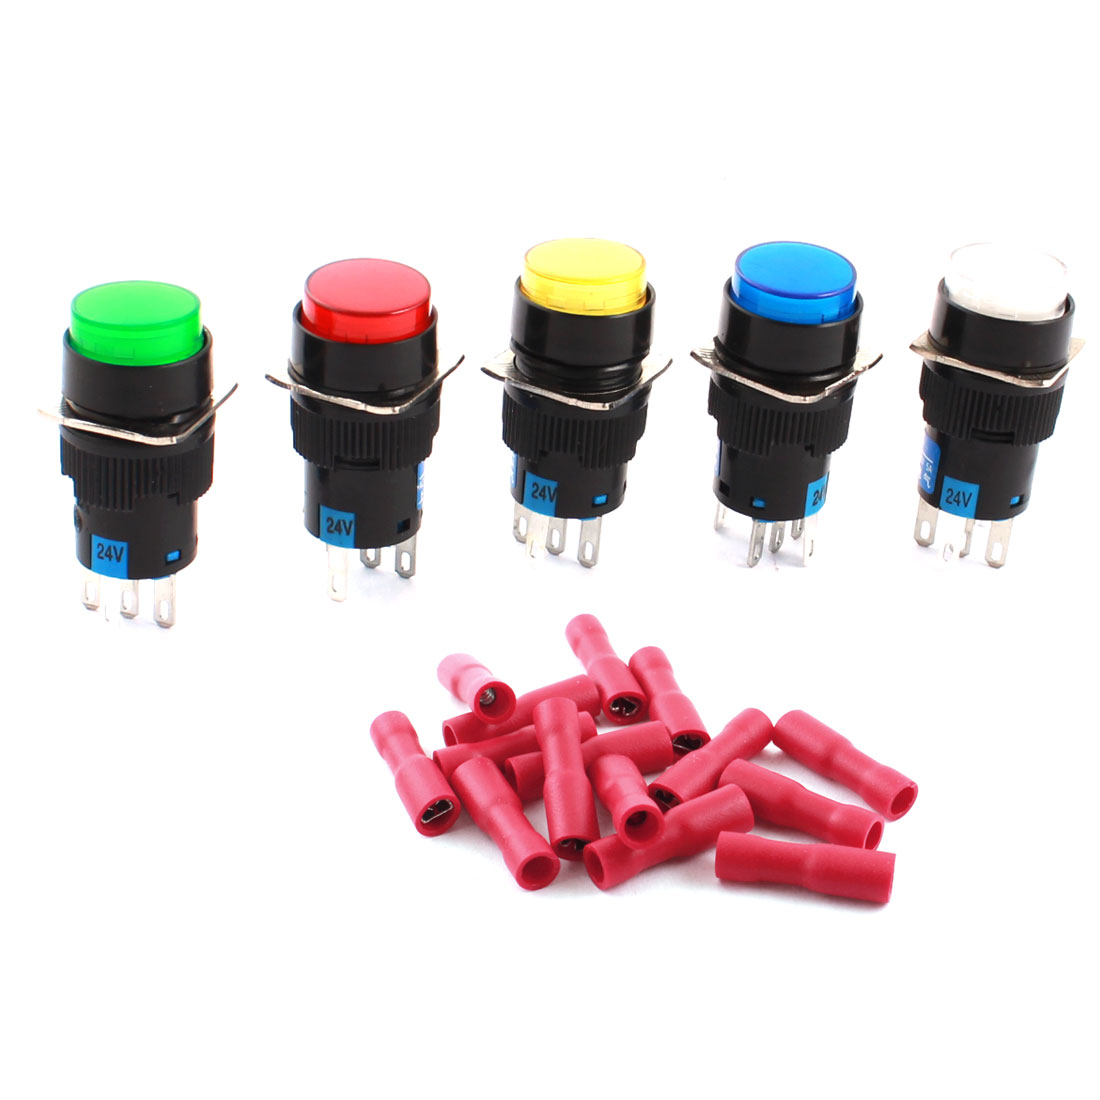 5PCS DC 24V Mixed Color Light Lamp 5Pins 16mm Threaded Panel Mounted SPDT Non Locking Round Push Button Switch + 25pcs Crimp Connectors